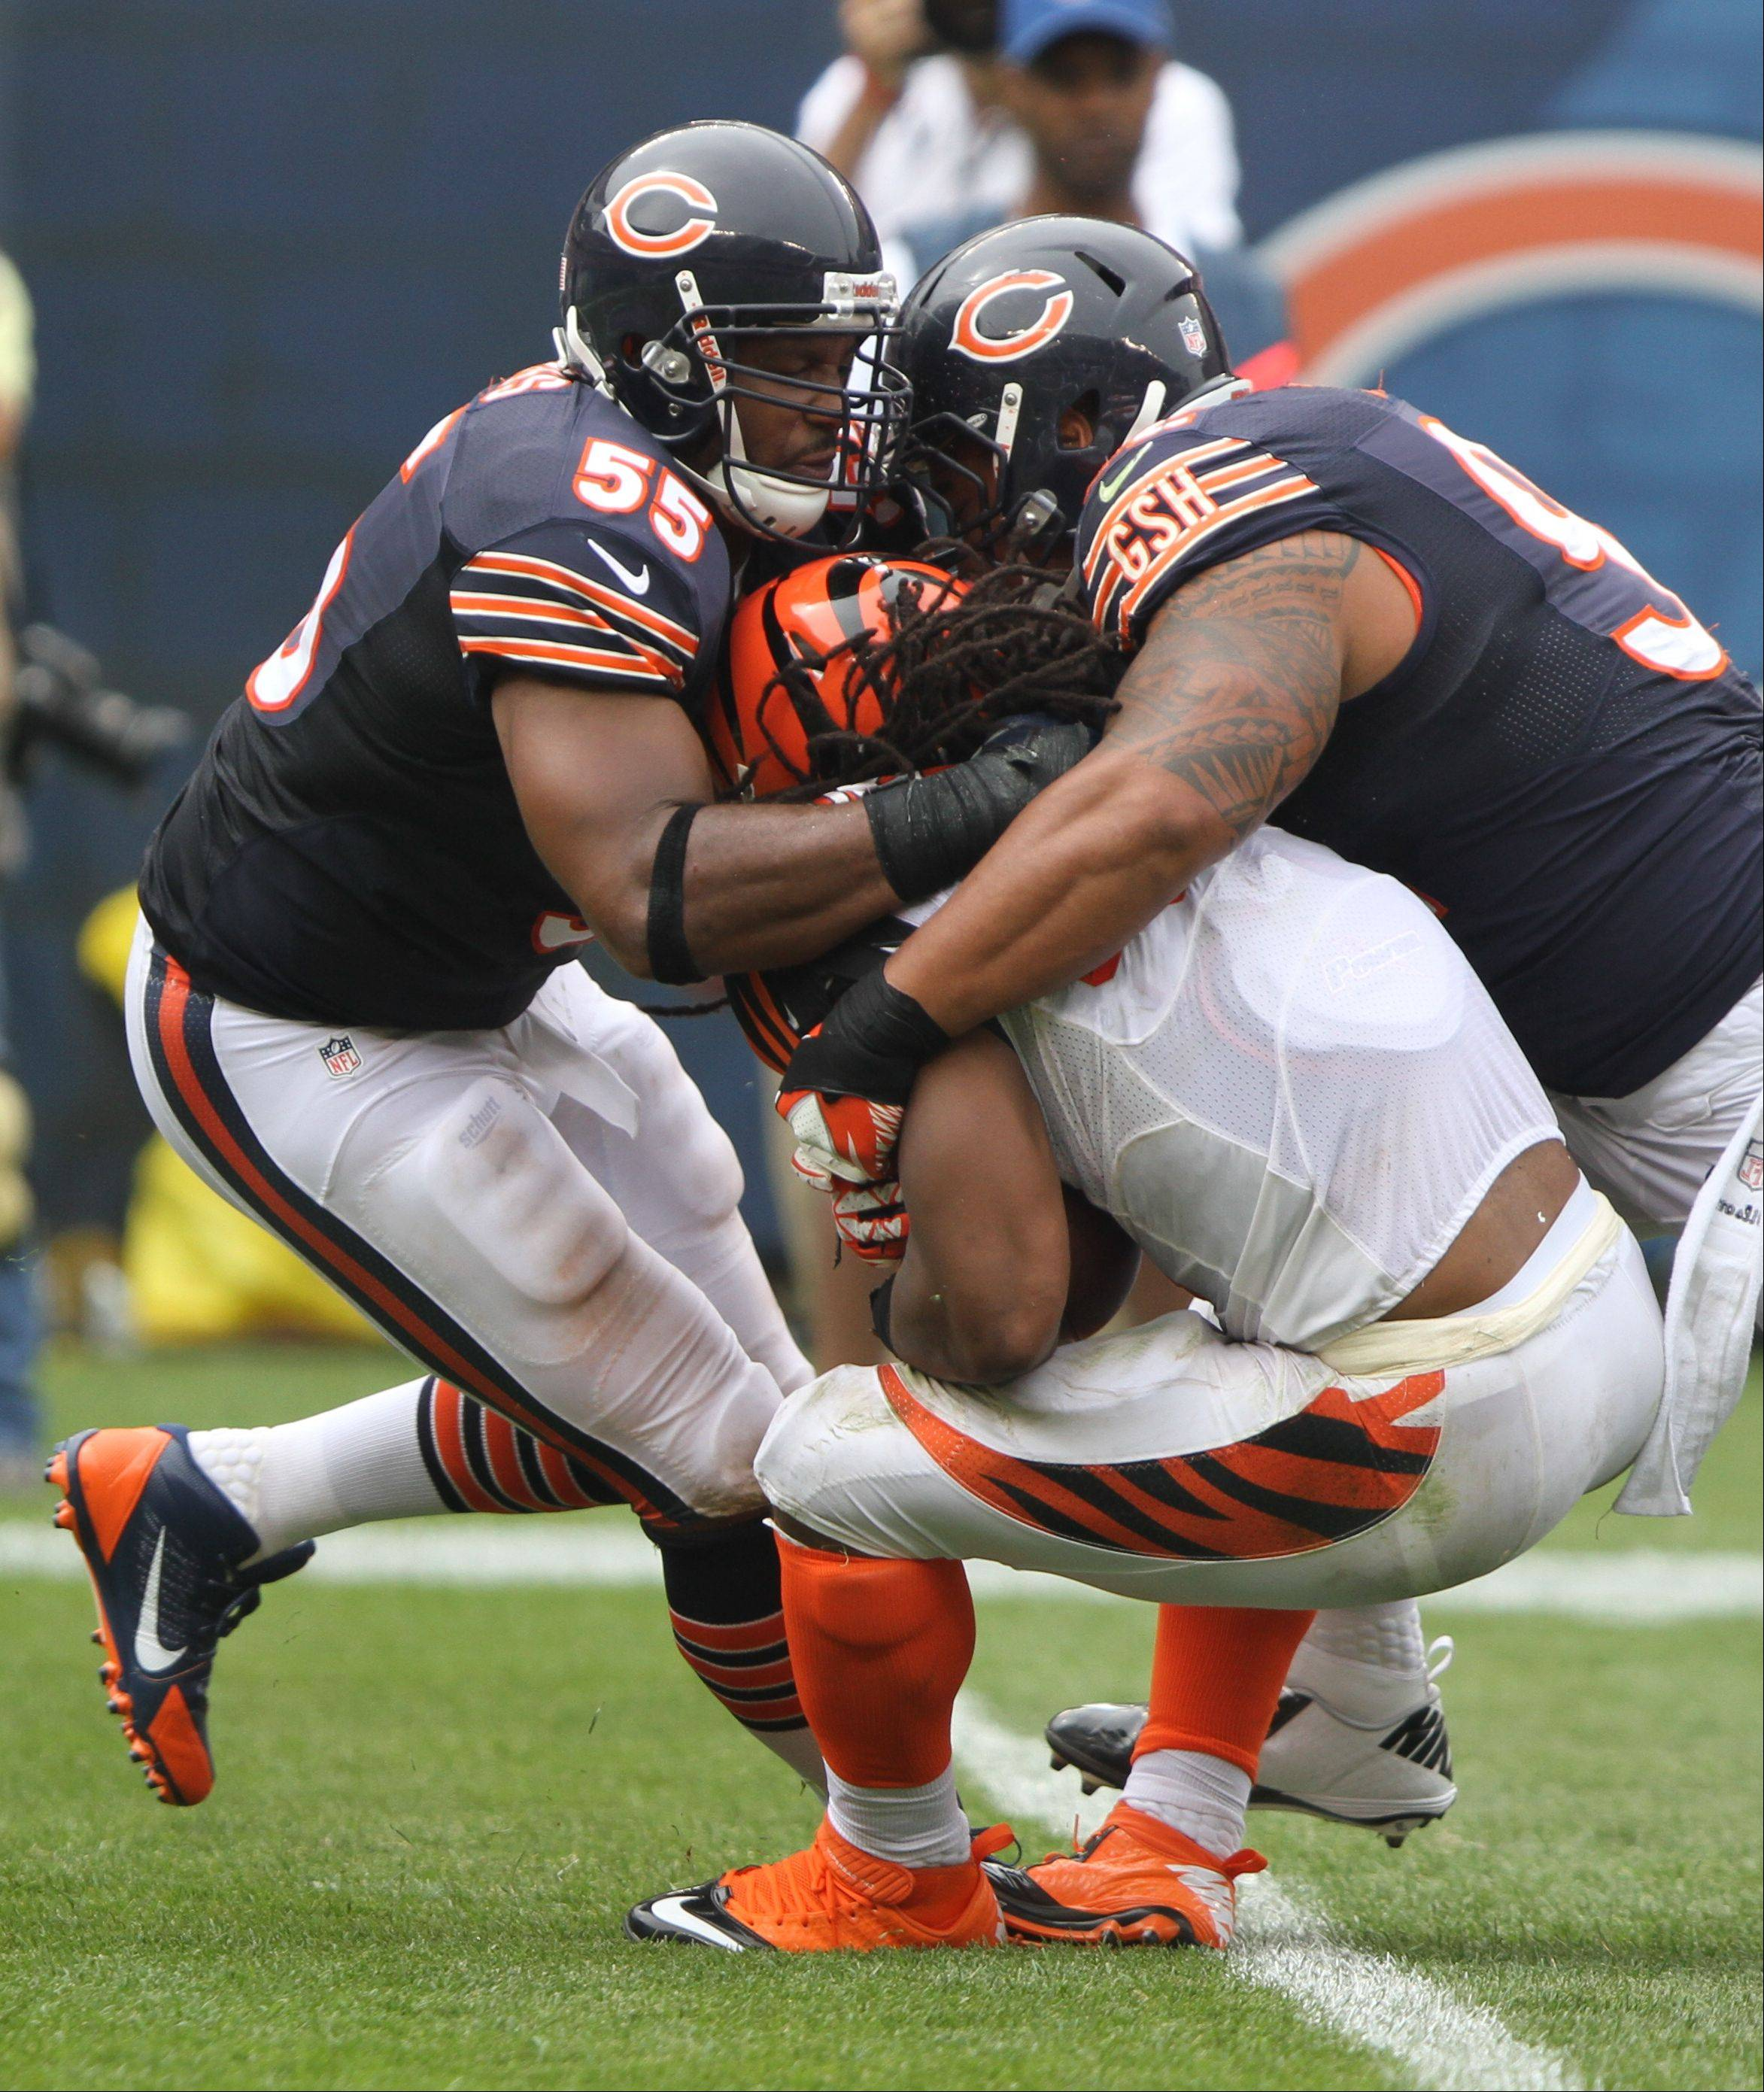 Chicago Bears outside linebacker Lance Briggs and Chicago Bears defensive end Julius Peppers put a hit on Cincinnati Bengals running back BenJarvus Green-Ellis during their opening day game against the Cincinnati Bengals Sunday at Soldier Field in Chicago.